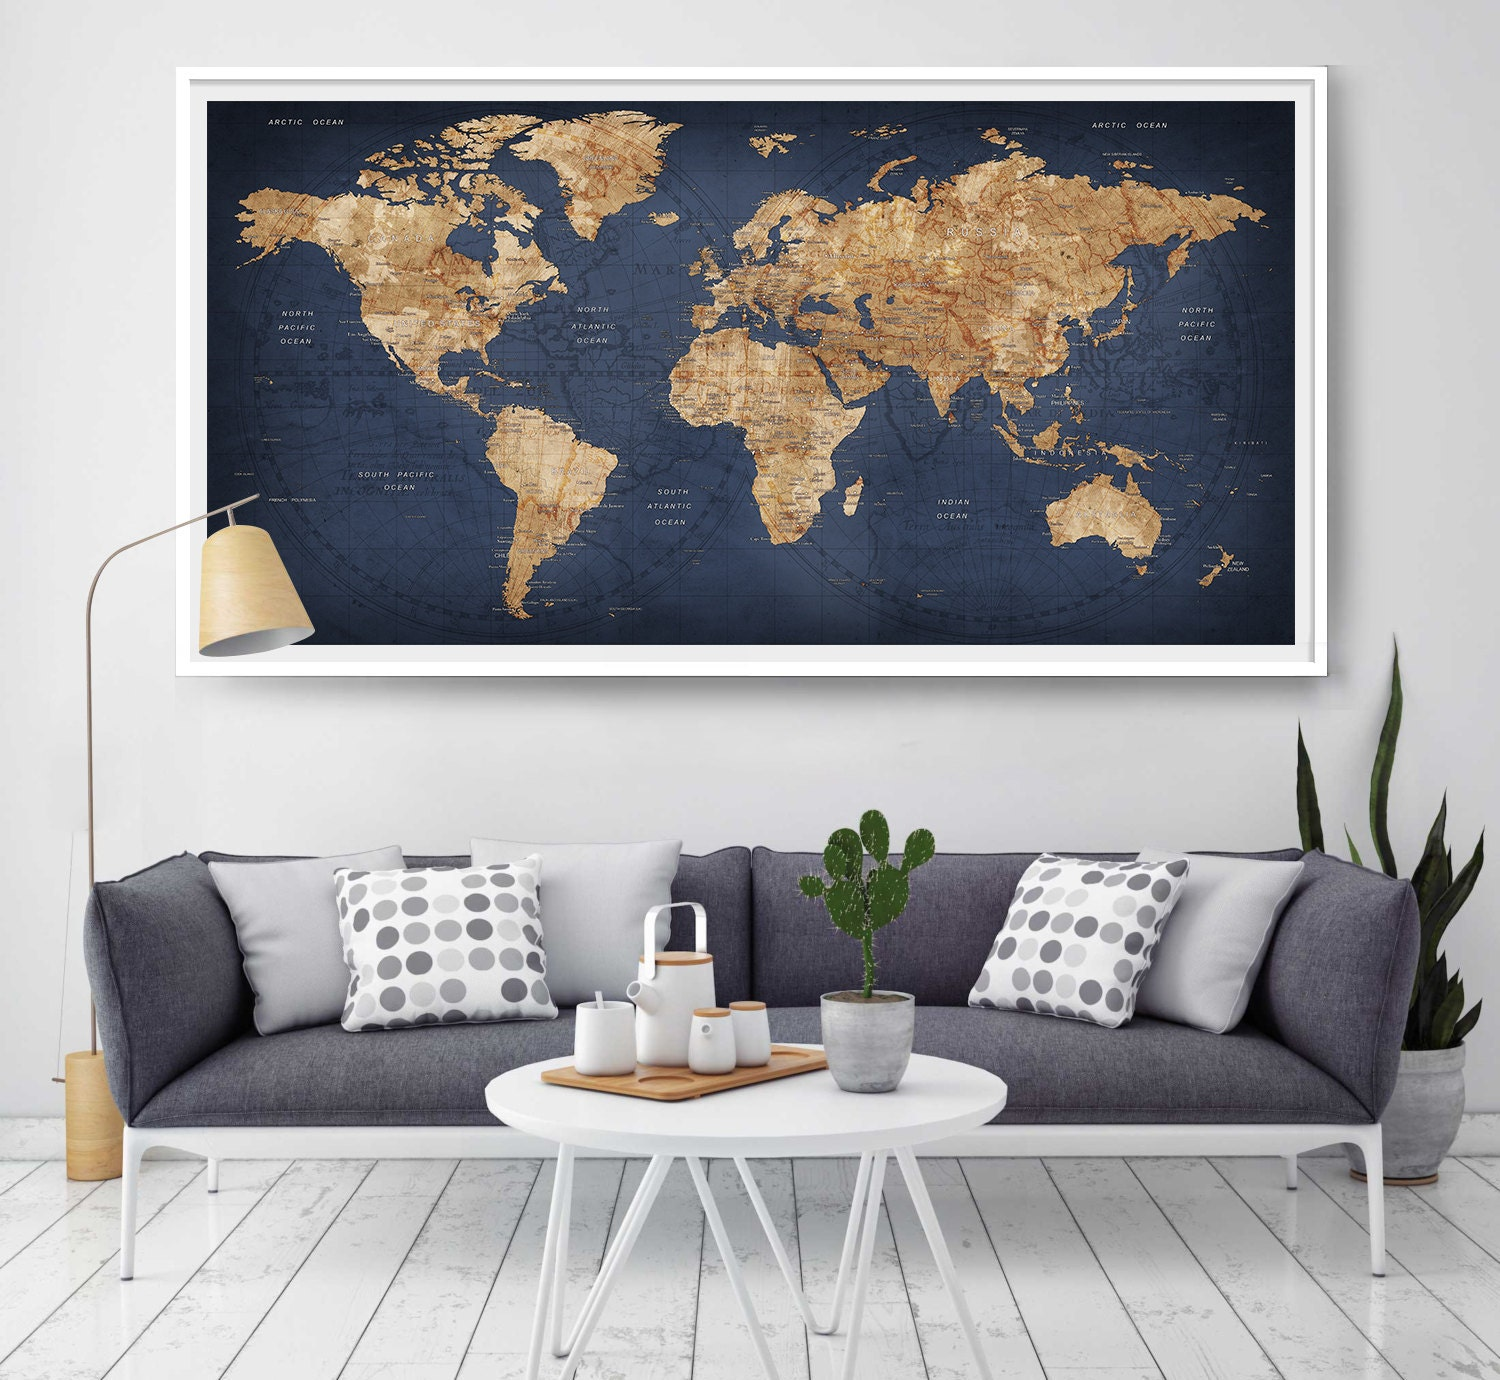 World map push pin world map Abstract World Map